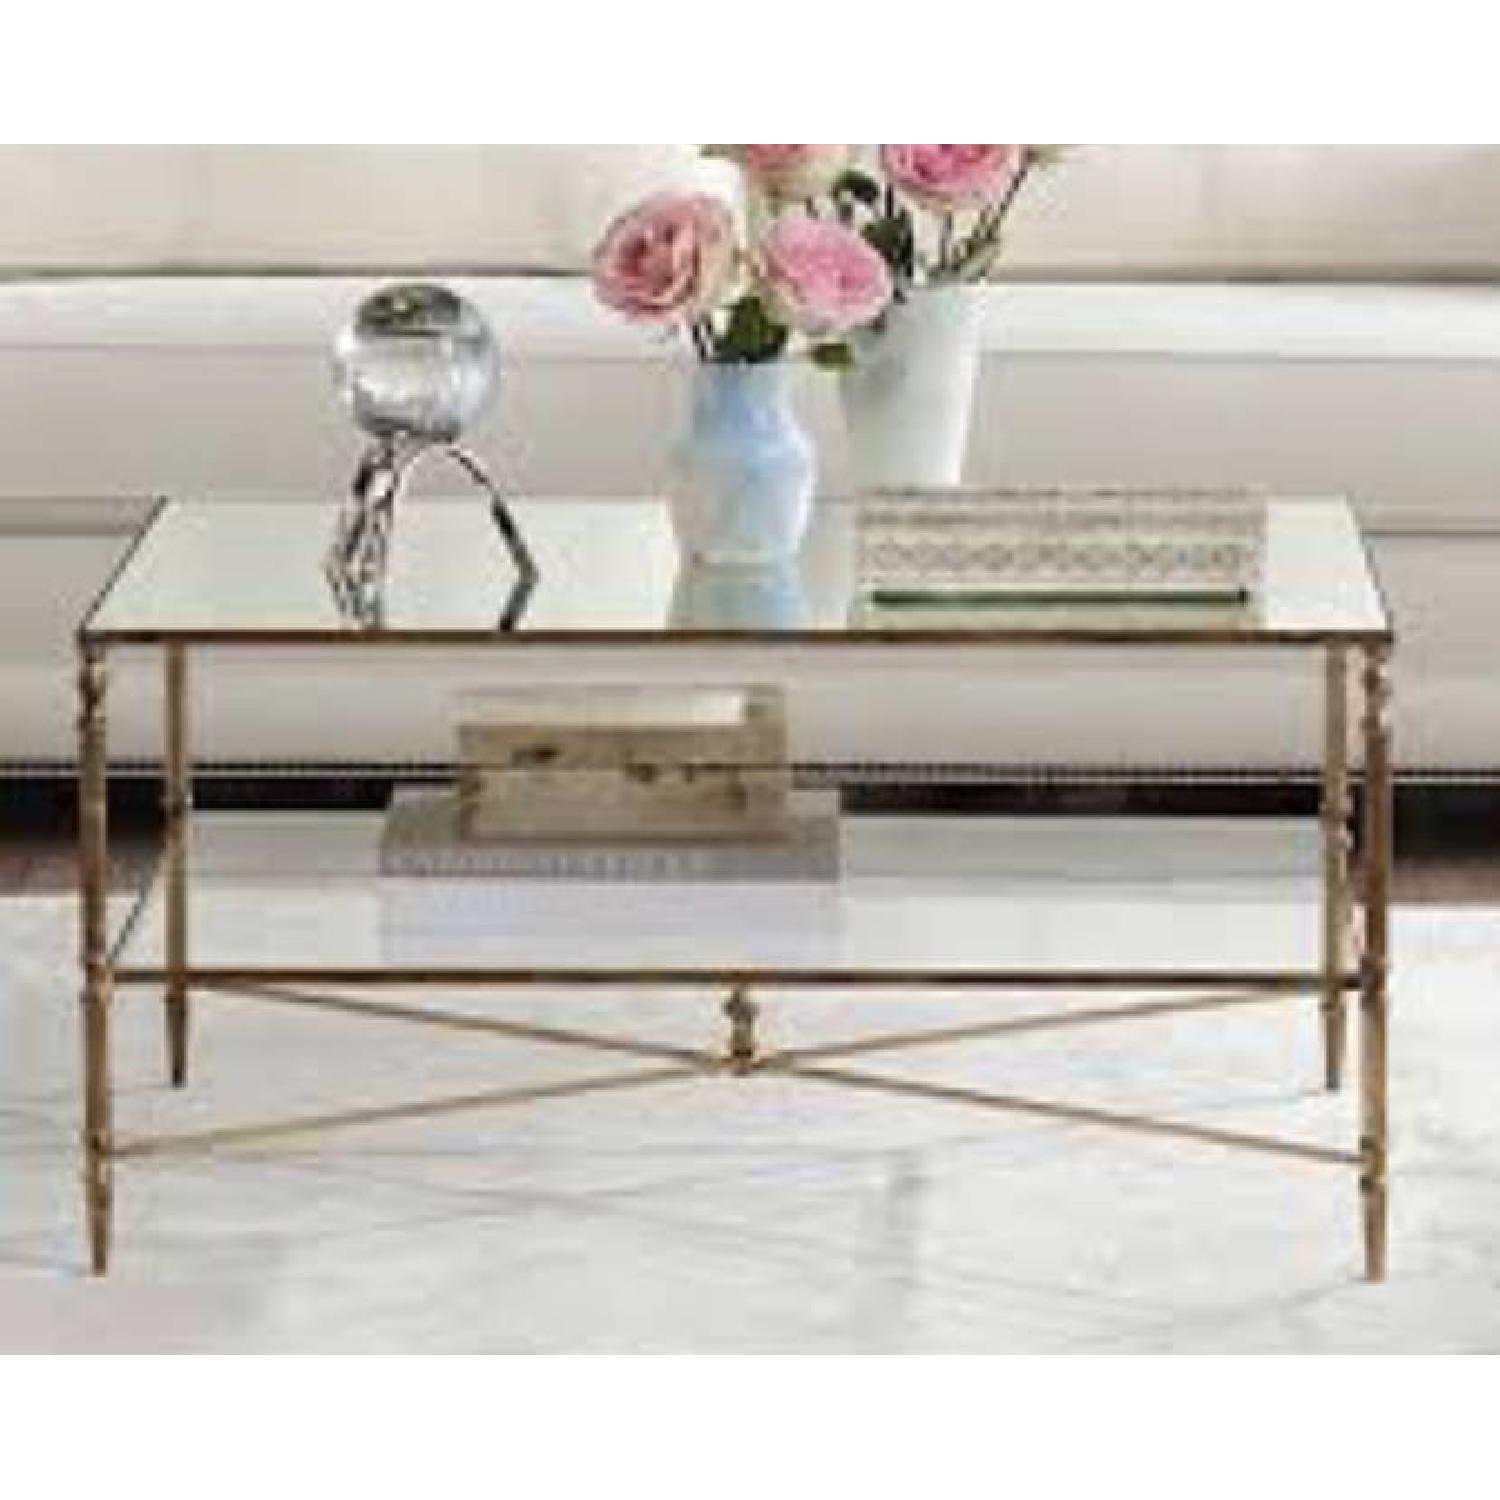 Uttermost Mirrored Glass Coffee Table - image-2